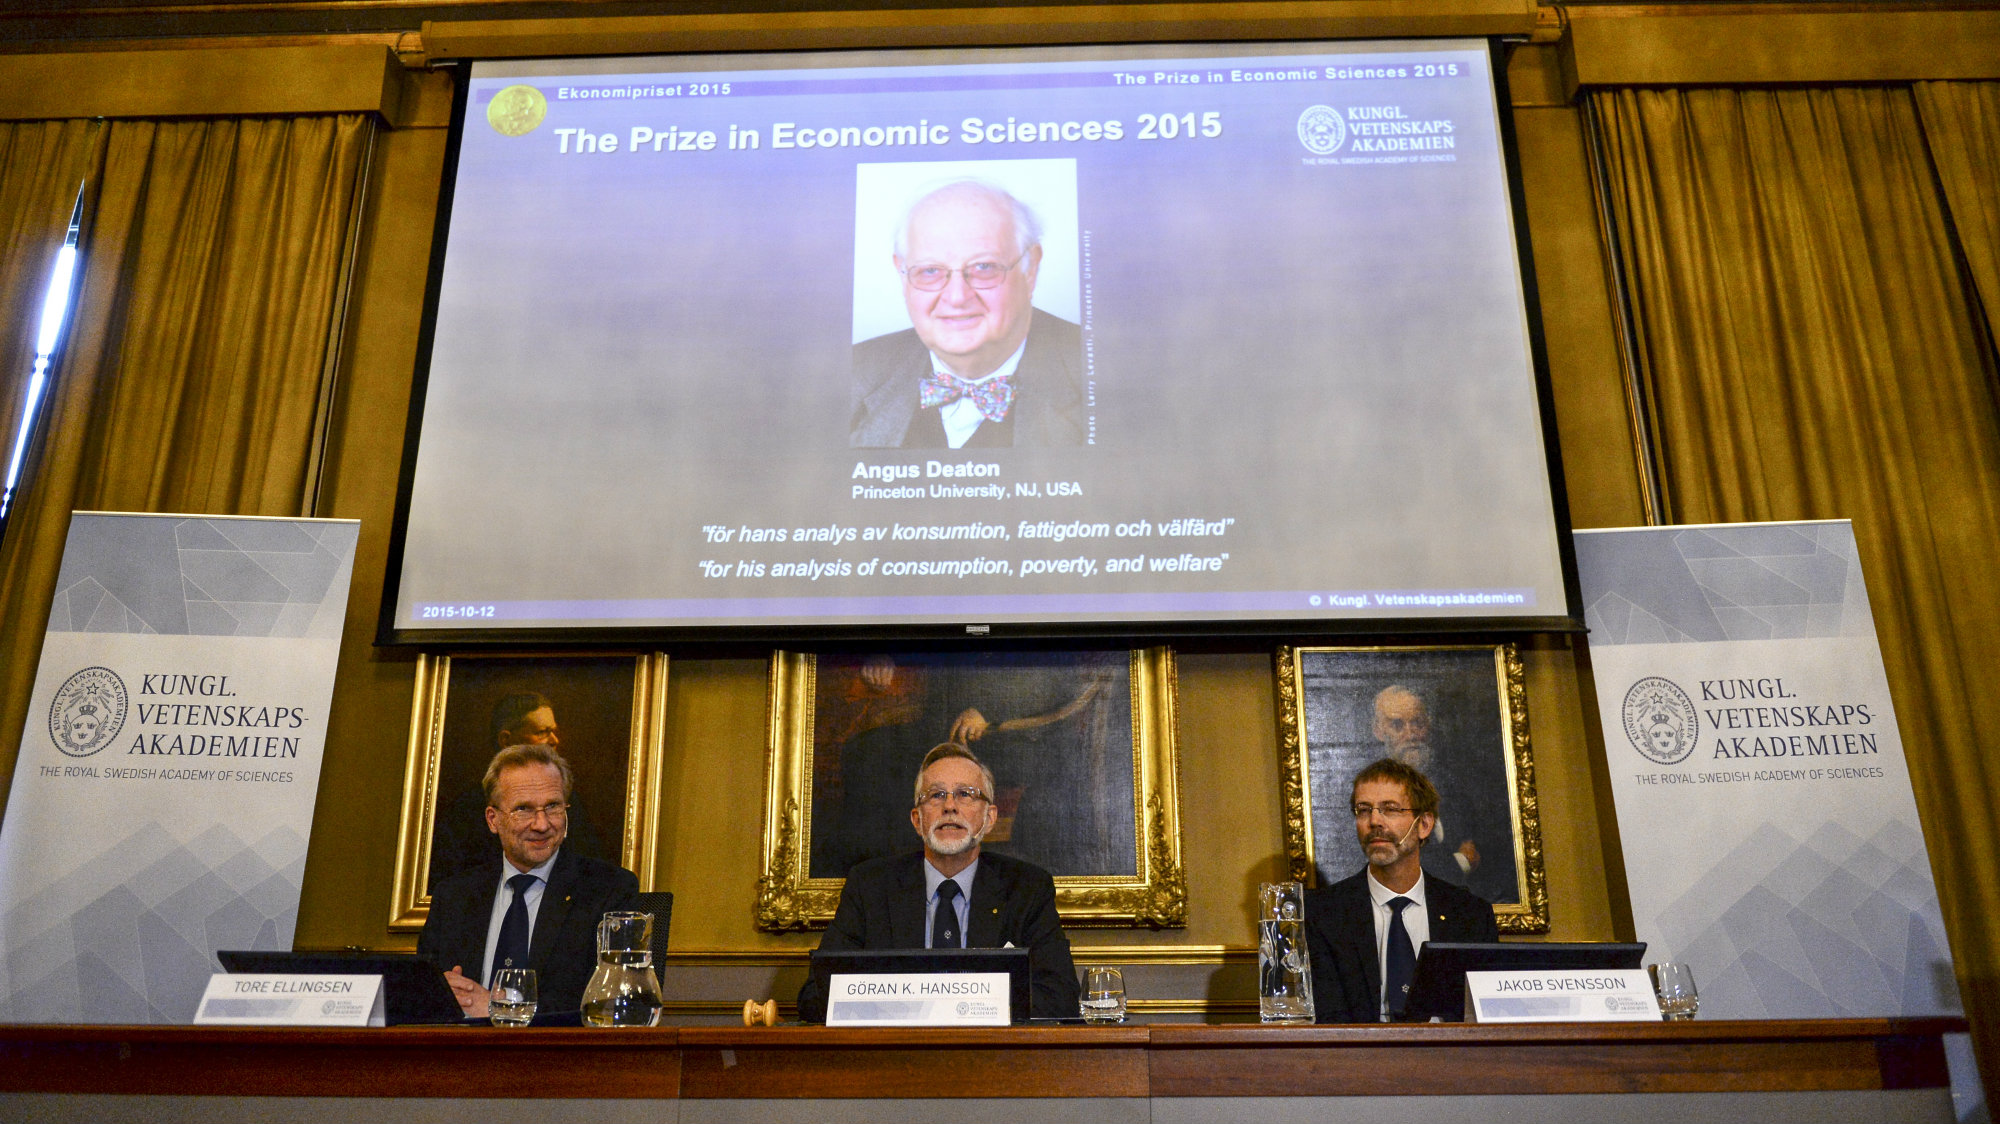 """A picture of British economist Angus Deaton, winner of the 2015 economics Nobel Prize, is seen on a screen as Goran K. Hansson (C), permanent secretary for the Royal Swedish Academy of Sciences, and Tore Ellingsen (L), chairman of the prize committee, and Jakob Svensson, member of the Academy, address a news conference at the Royal Swedish Academy of Science, in Stockholm, Sweden October 12, 2015. Deaton won the 2015 economics Nobel Prize for """"his analysis of consumption, poverty, and we"""